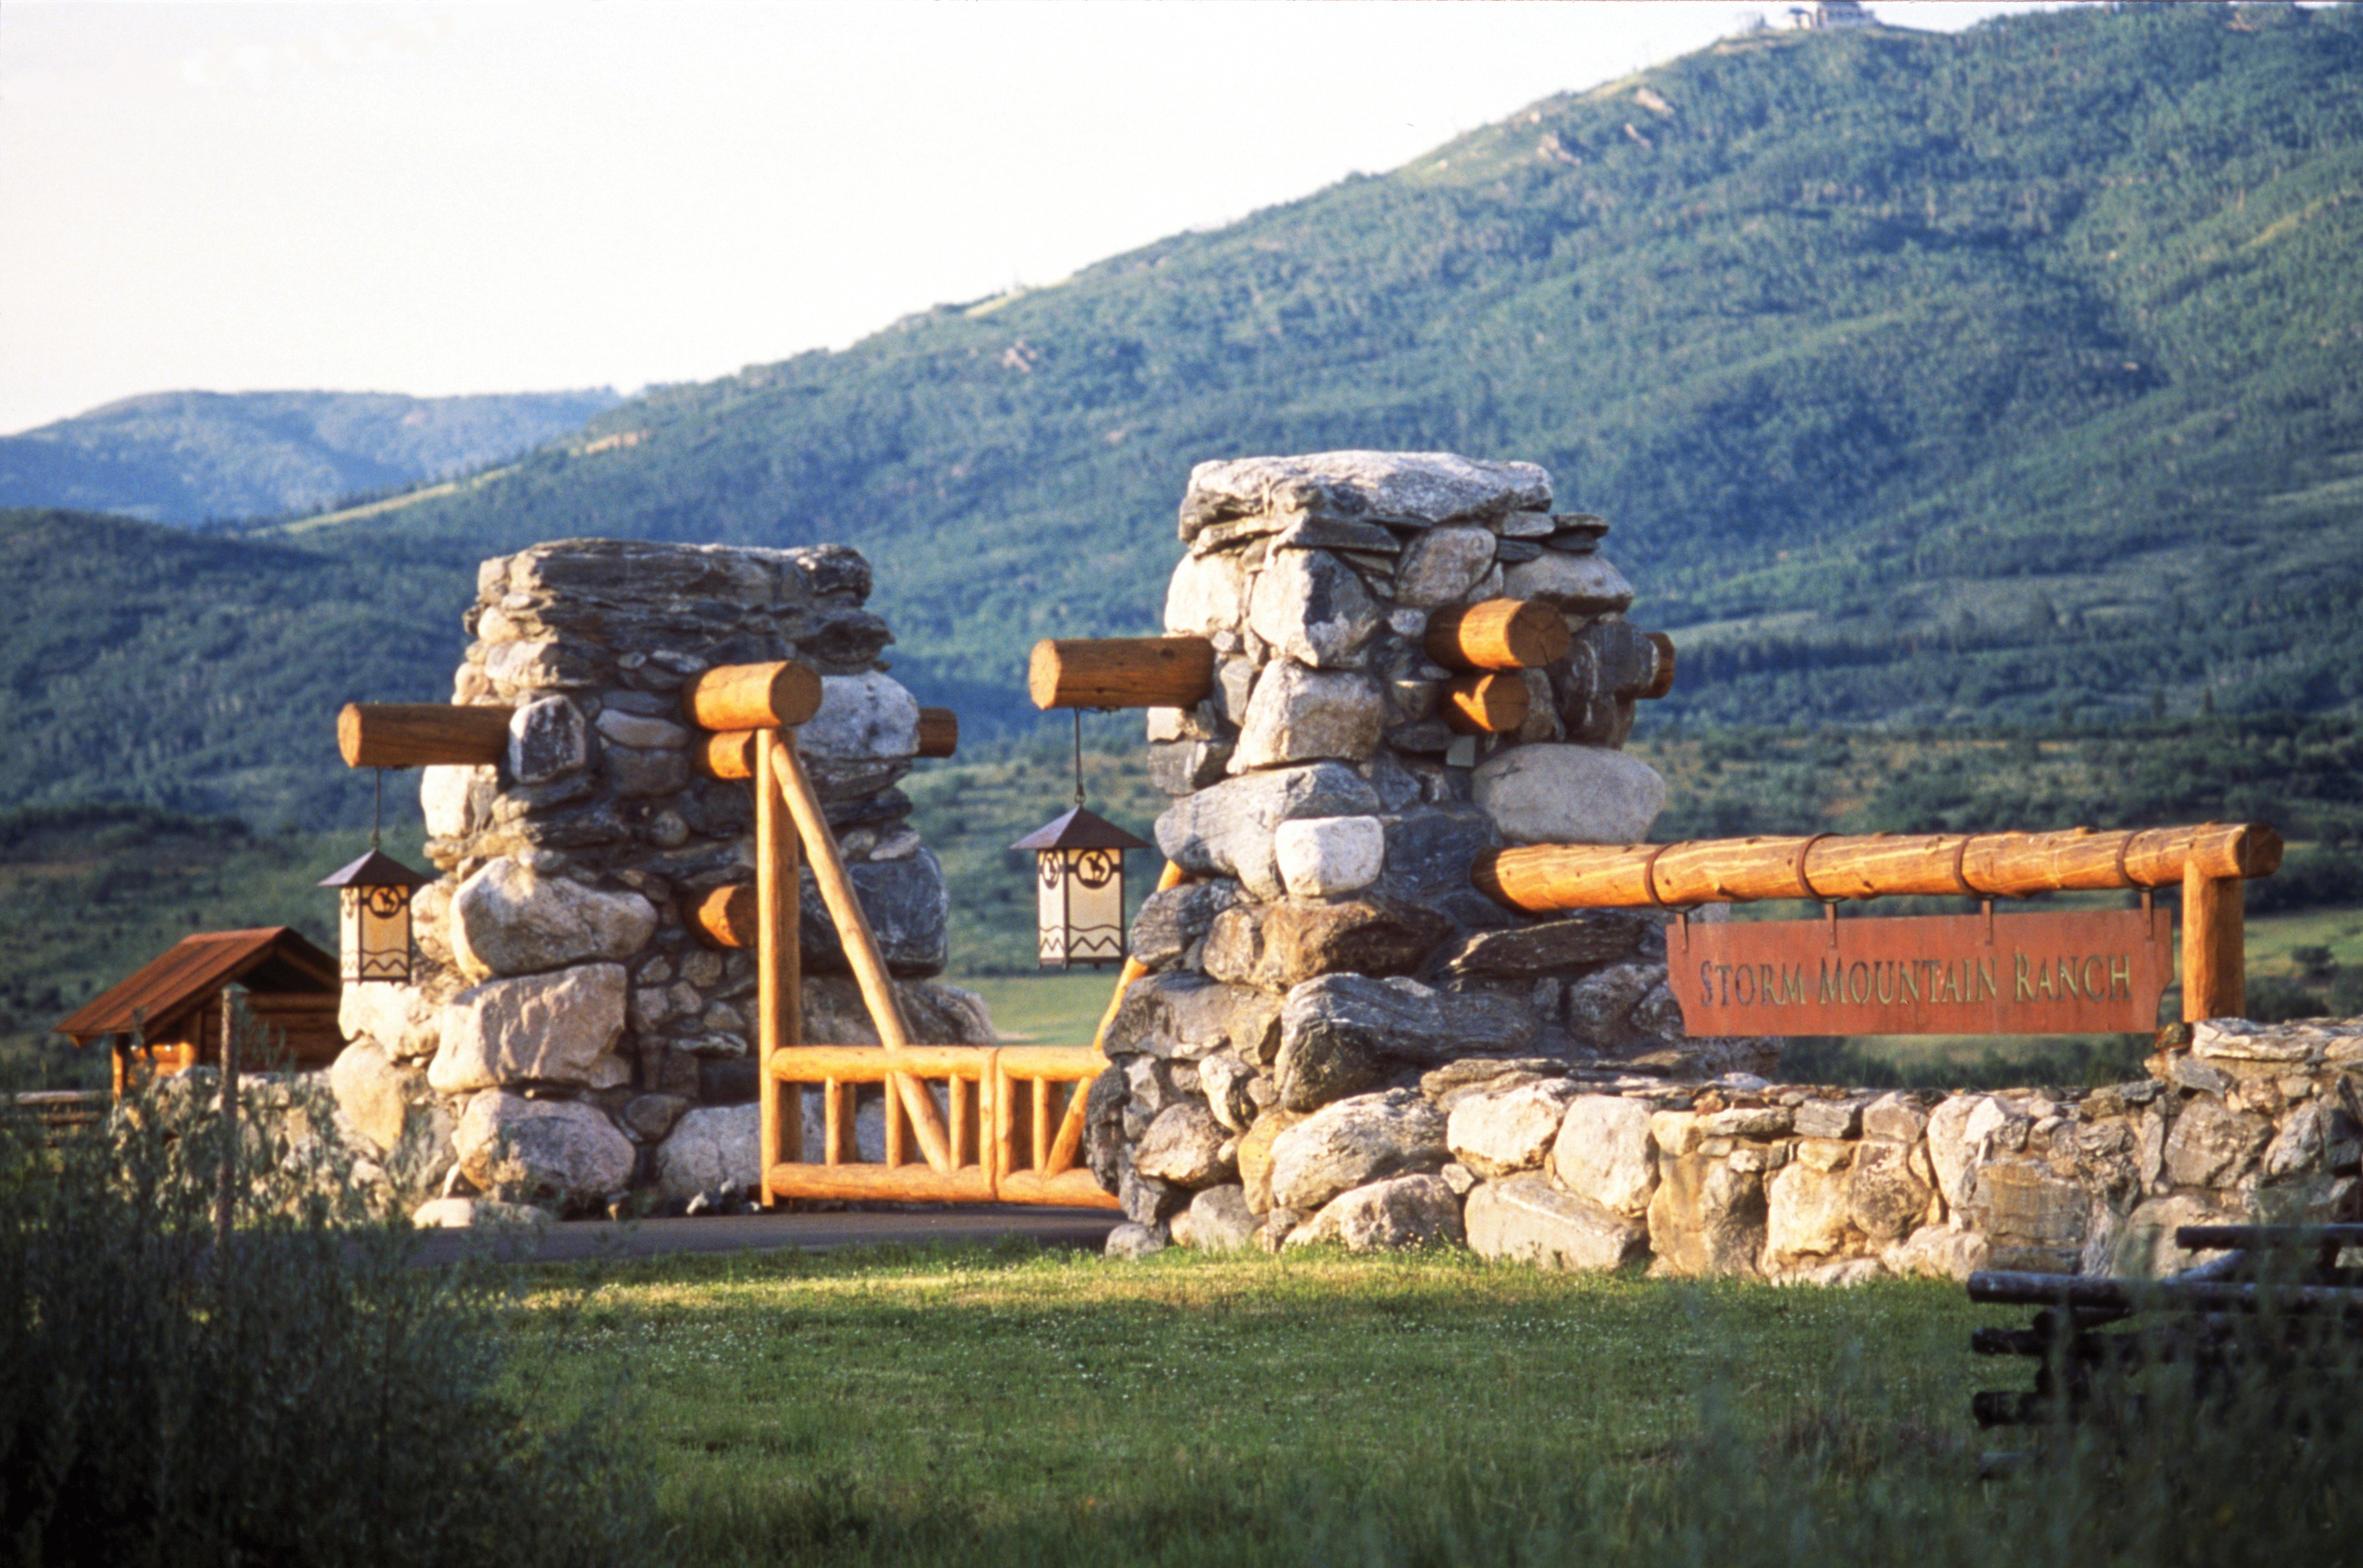 storm_mountain_ranch_steamboat_springs_colorado_signage.jpg